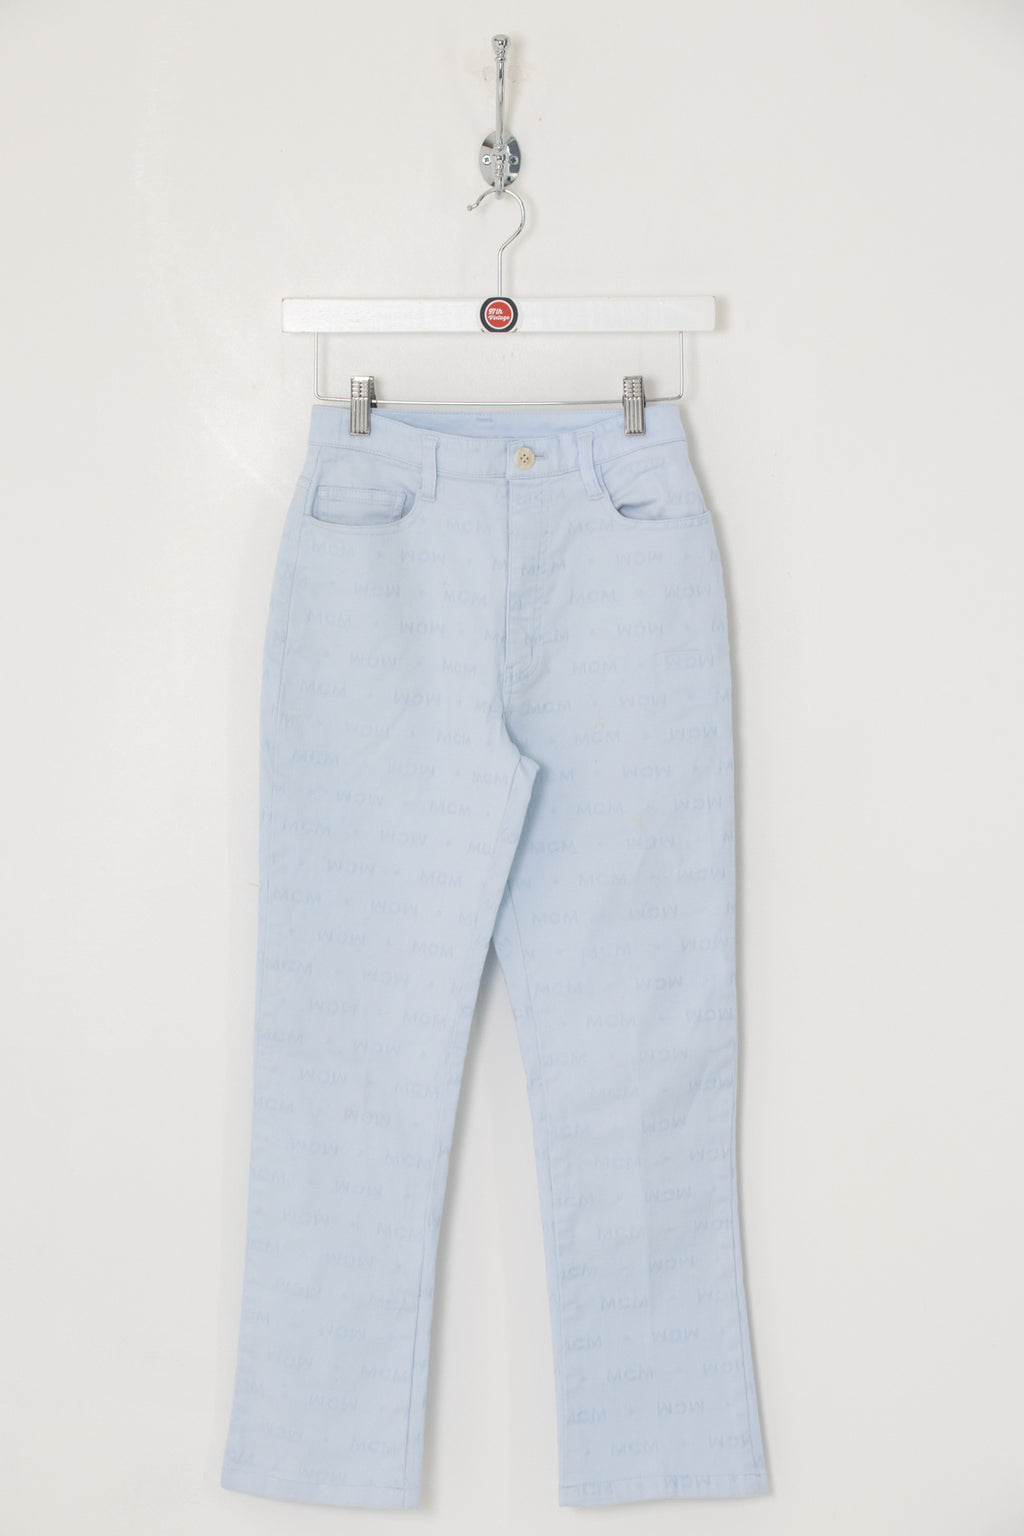 Women's MCM Monogram Trousers (XS)